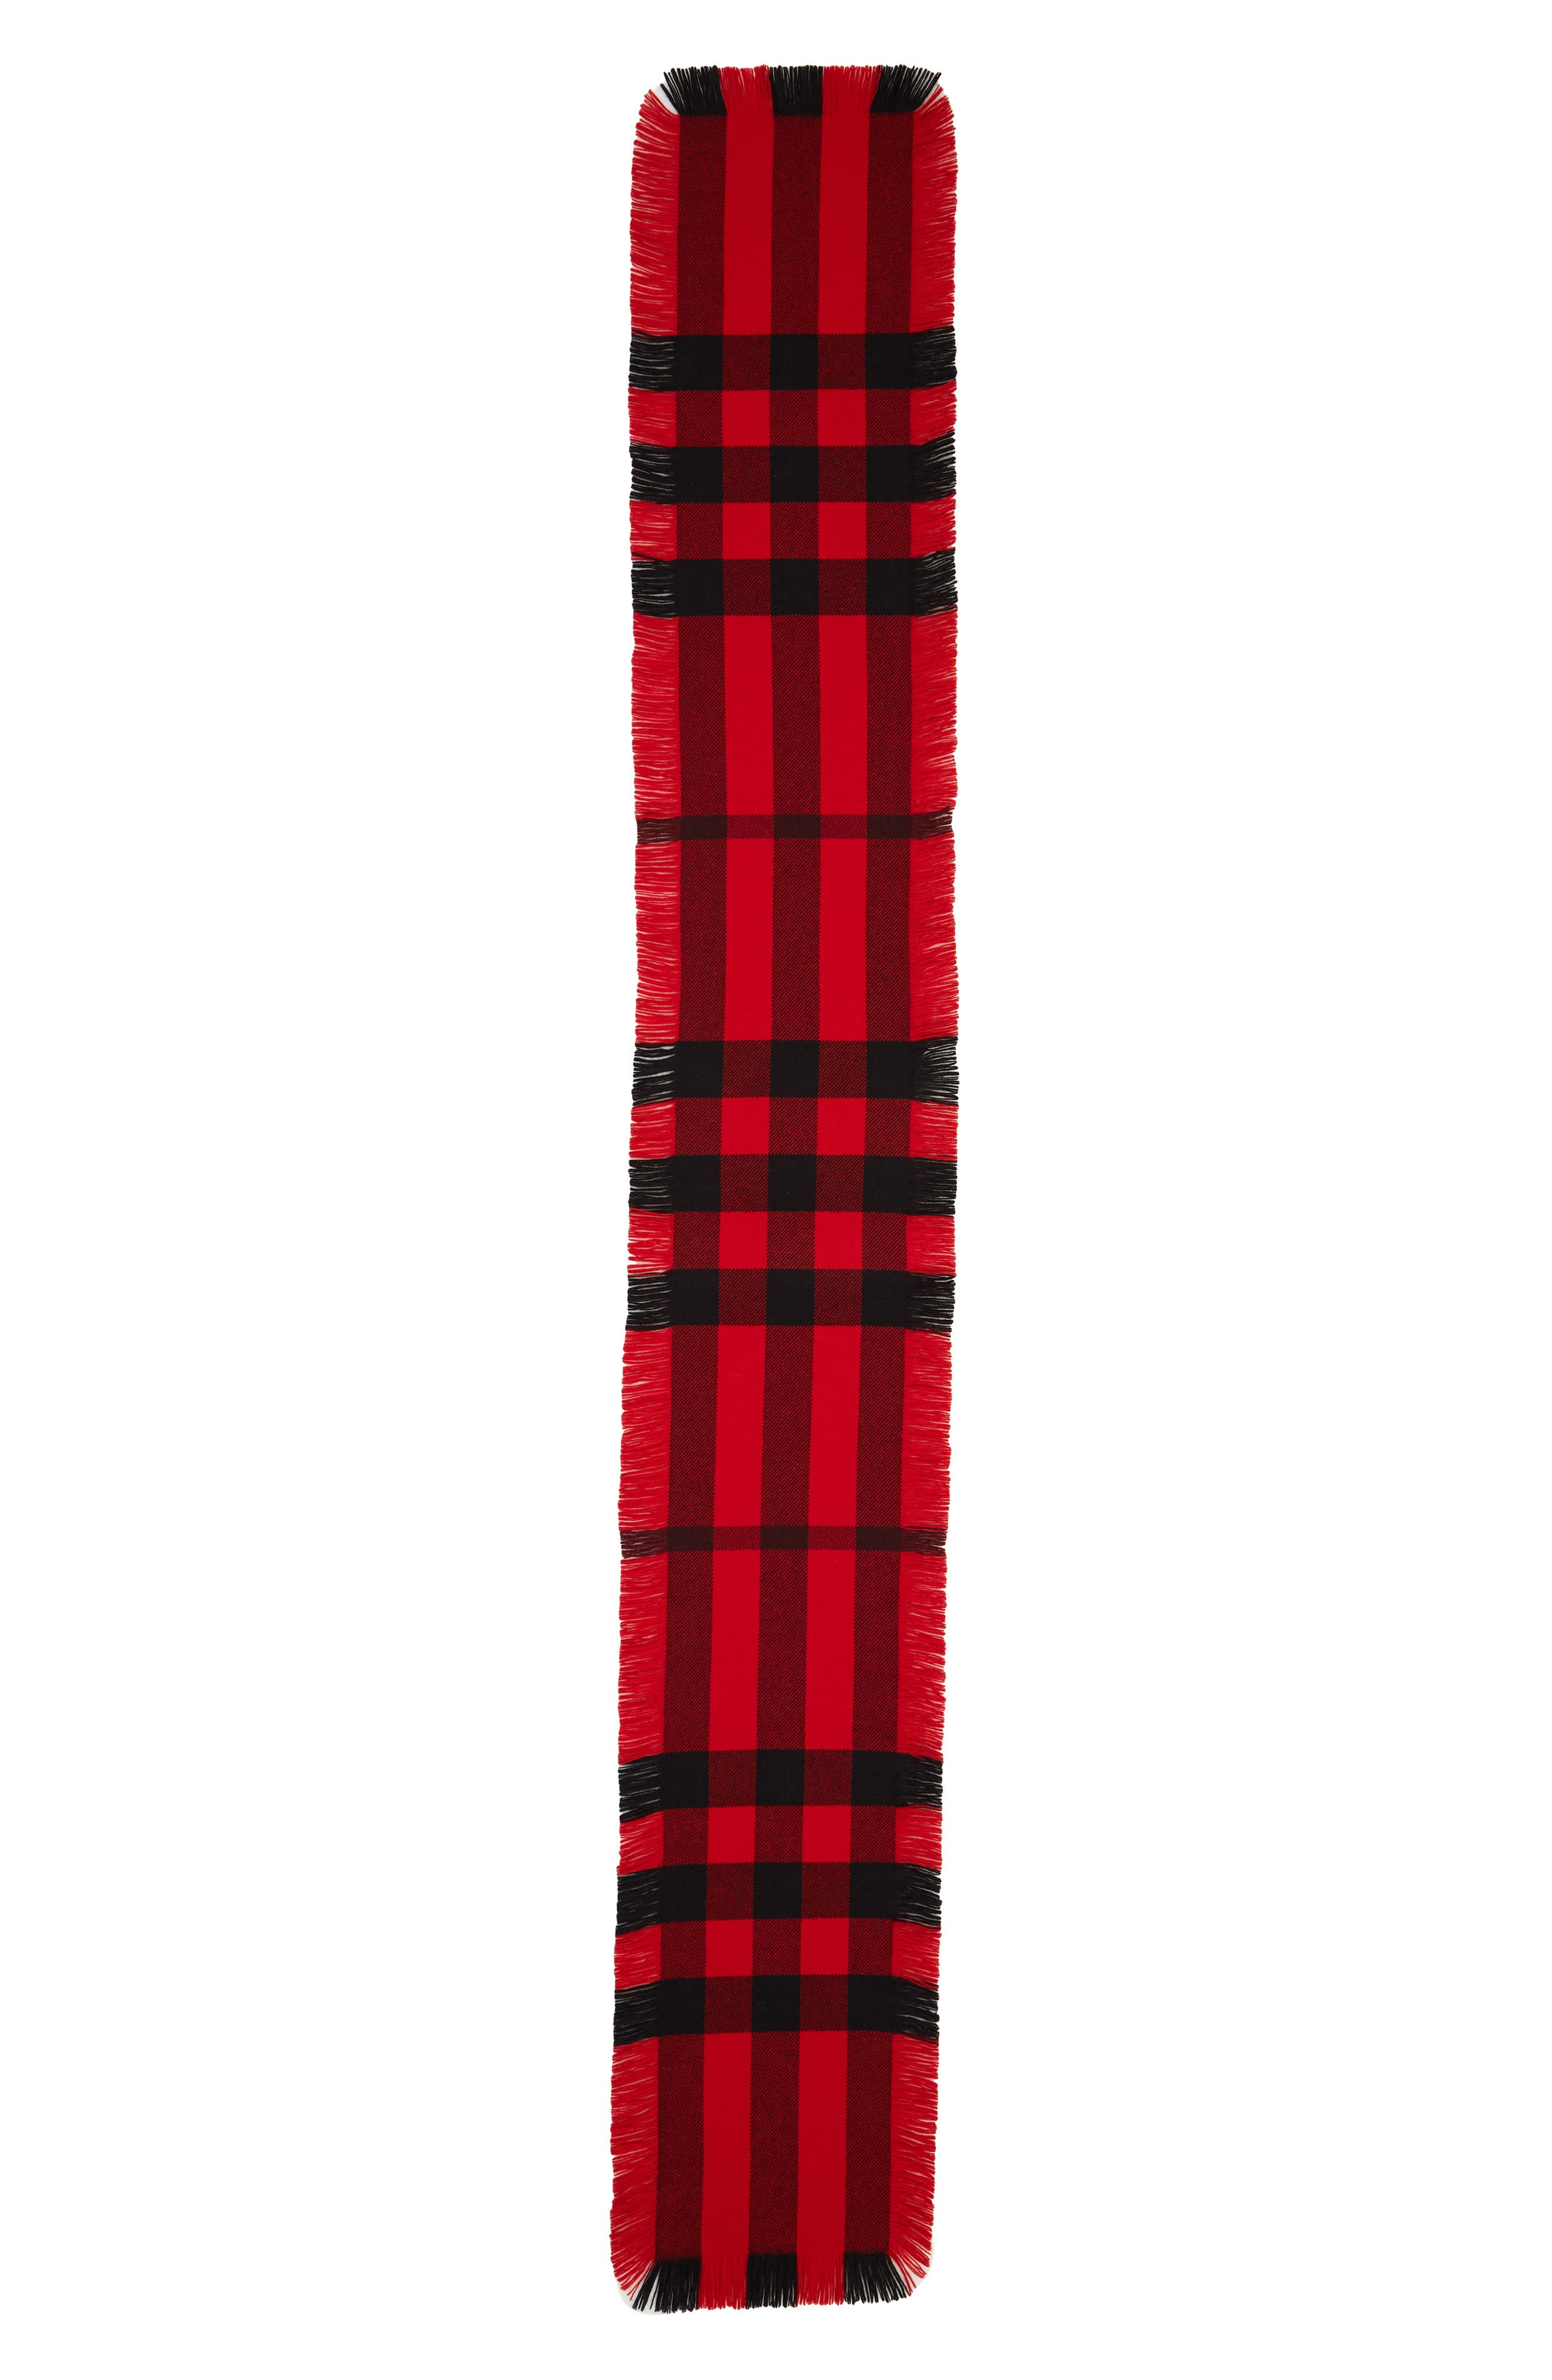 BURBERRY Mega Fashion Fringe Wool Scarf, Main, color, MILITARY RED